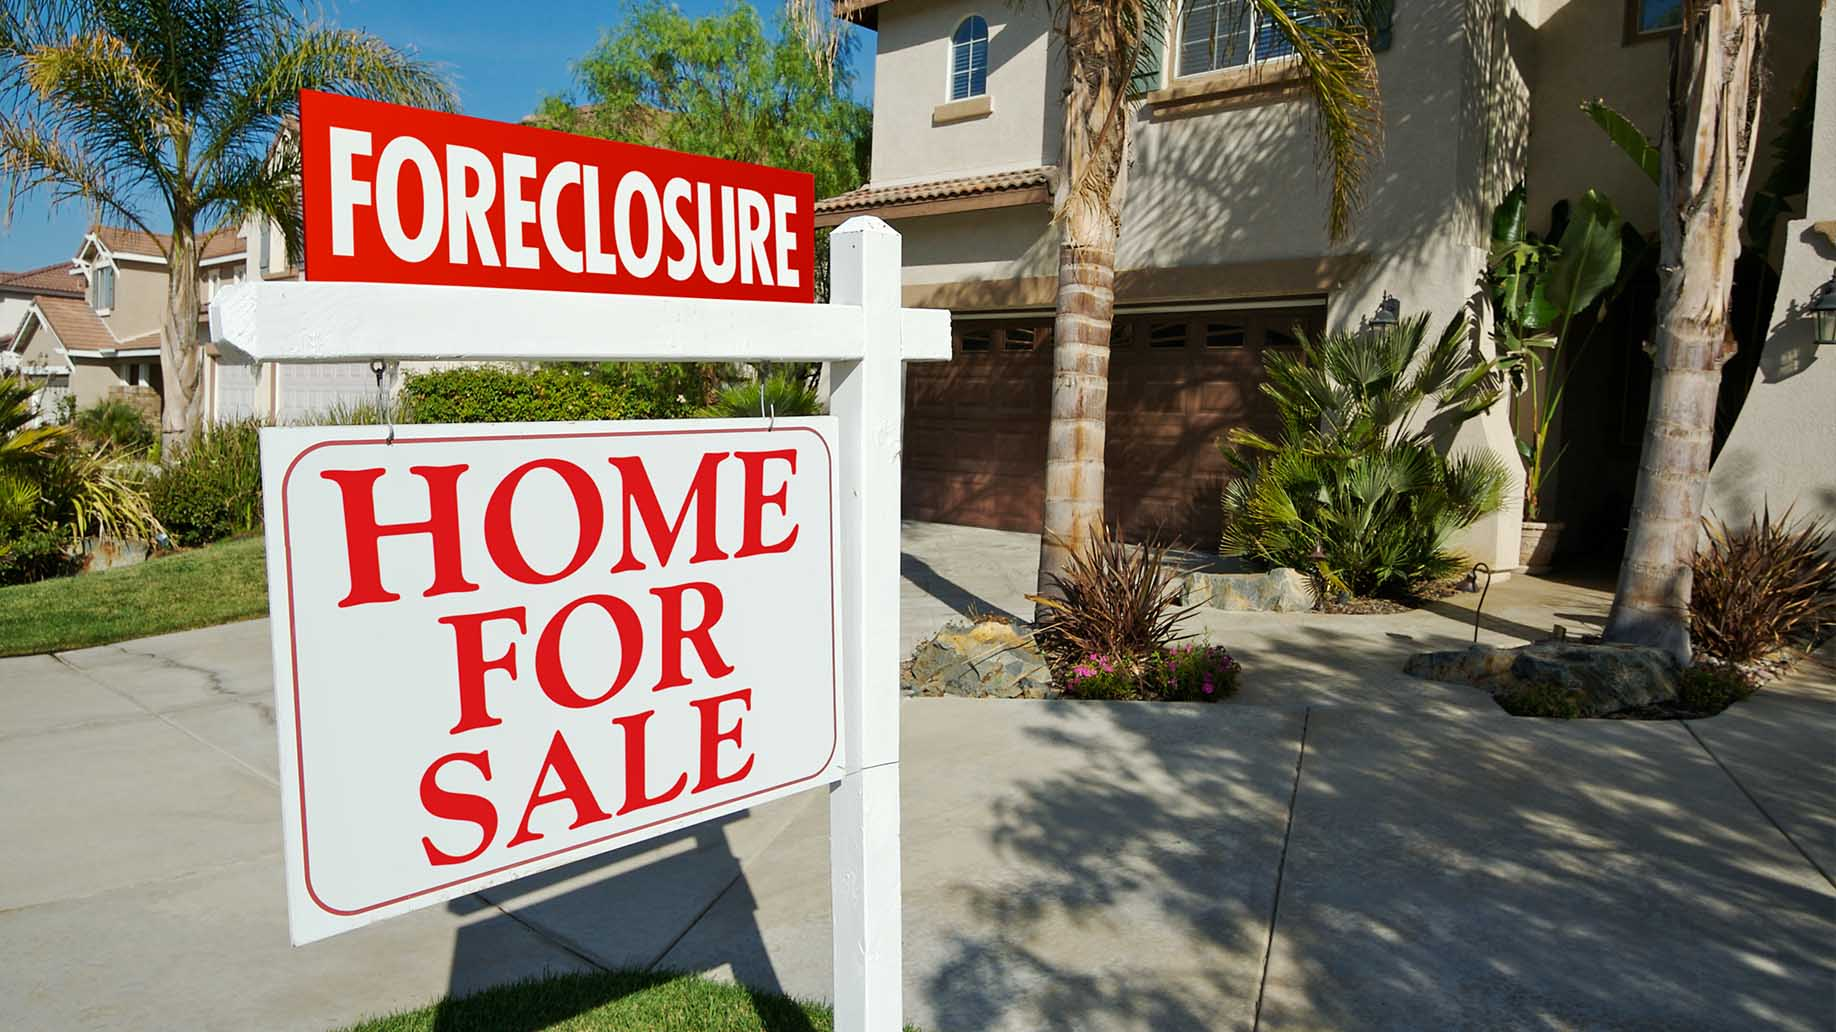 foreclosure sale real estate sign front